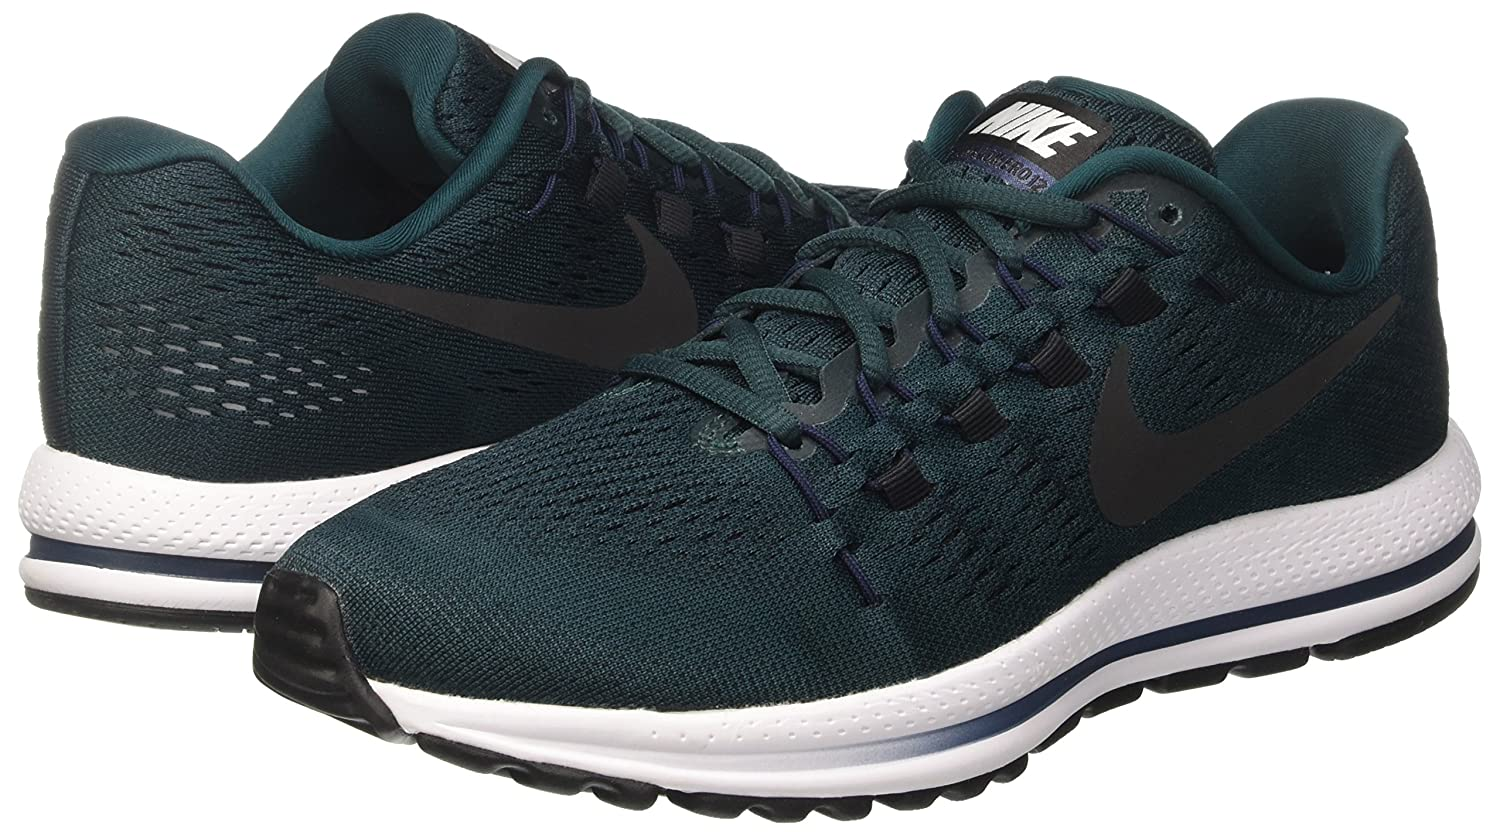 0e30a35f5210e2 NIKE Men s Air Zoom Vomero 12 Competition Running Shoes